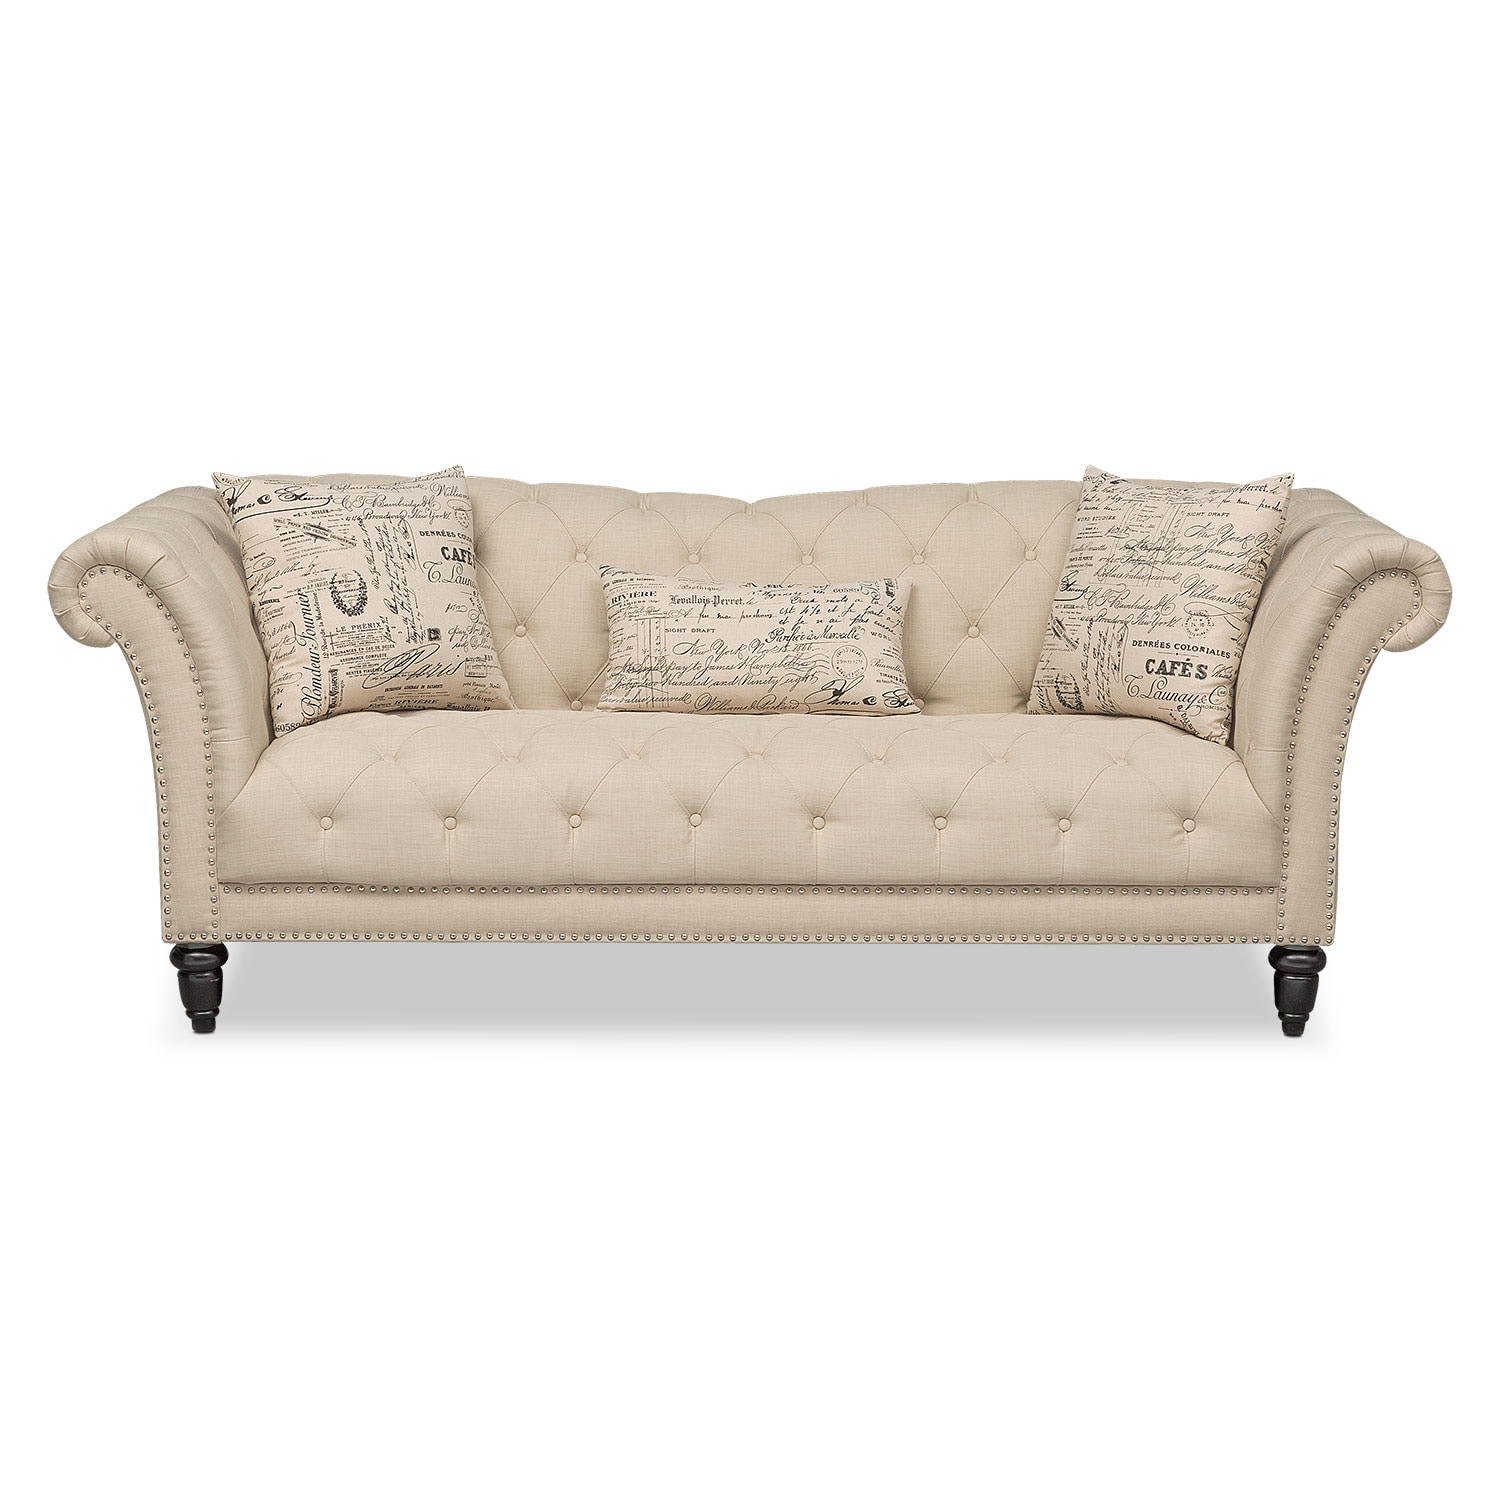 Value City Furniture Sofa Bed